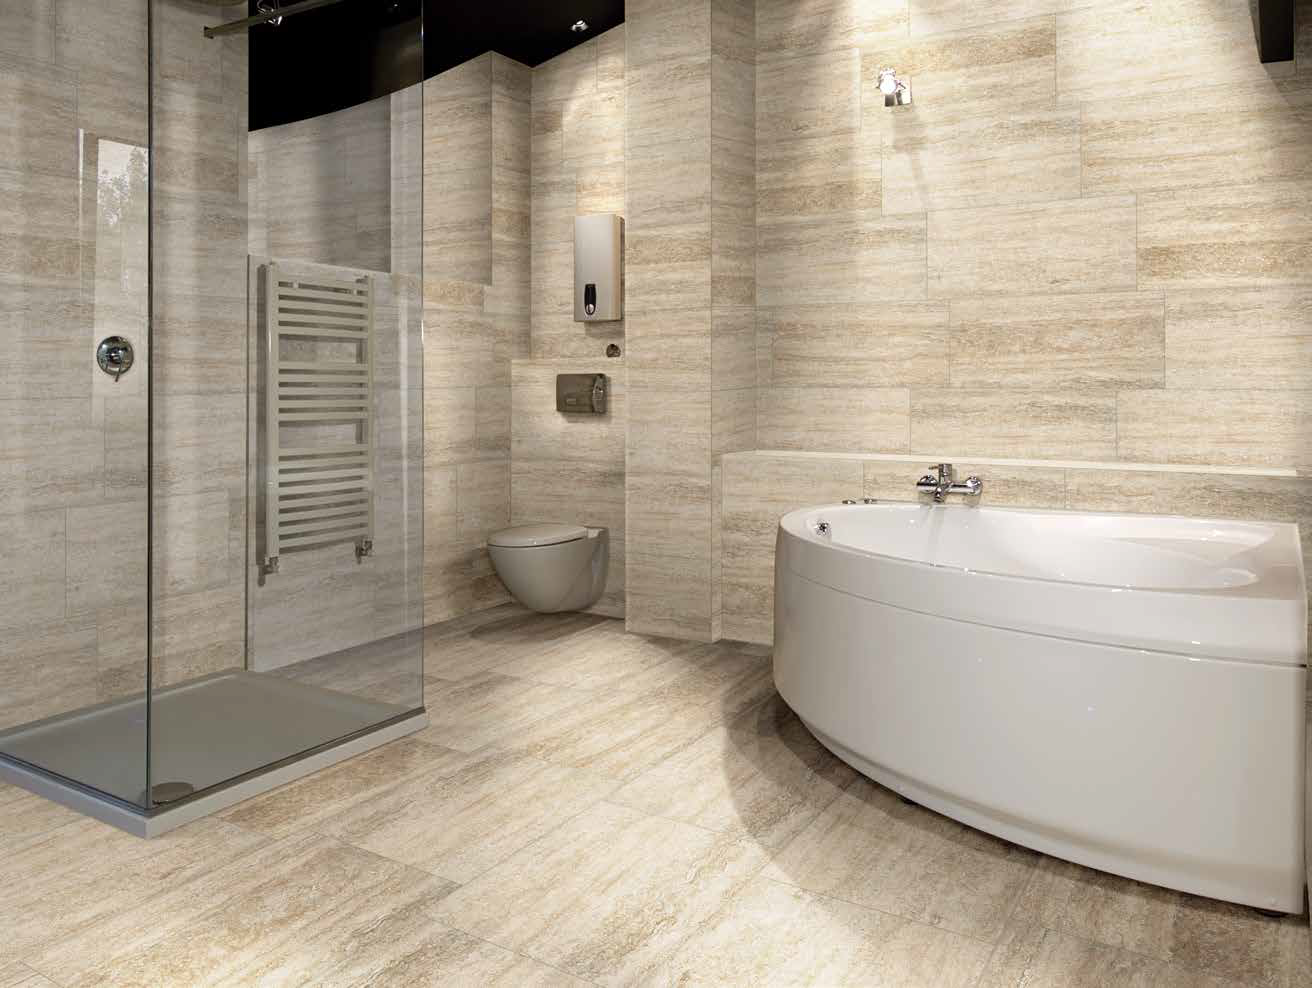 ingenious ivory vein cut travertine. With its new porcelain tile series  Forum Mediterranea delivers the look of classic vein cut travertine Cumberland Stone Vein Cappuccino 12x24 Porcelain Tile